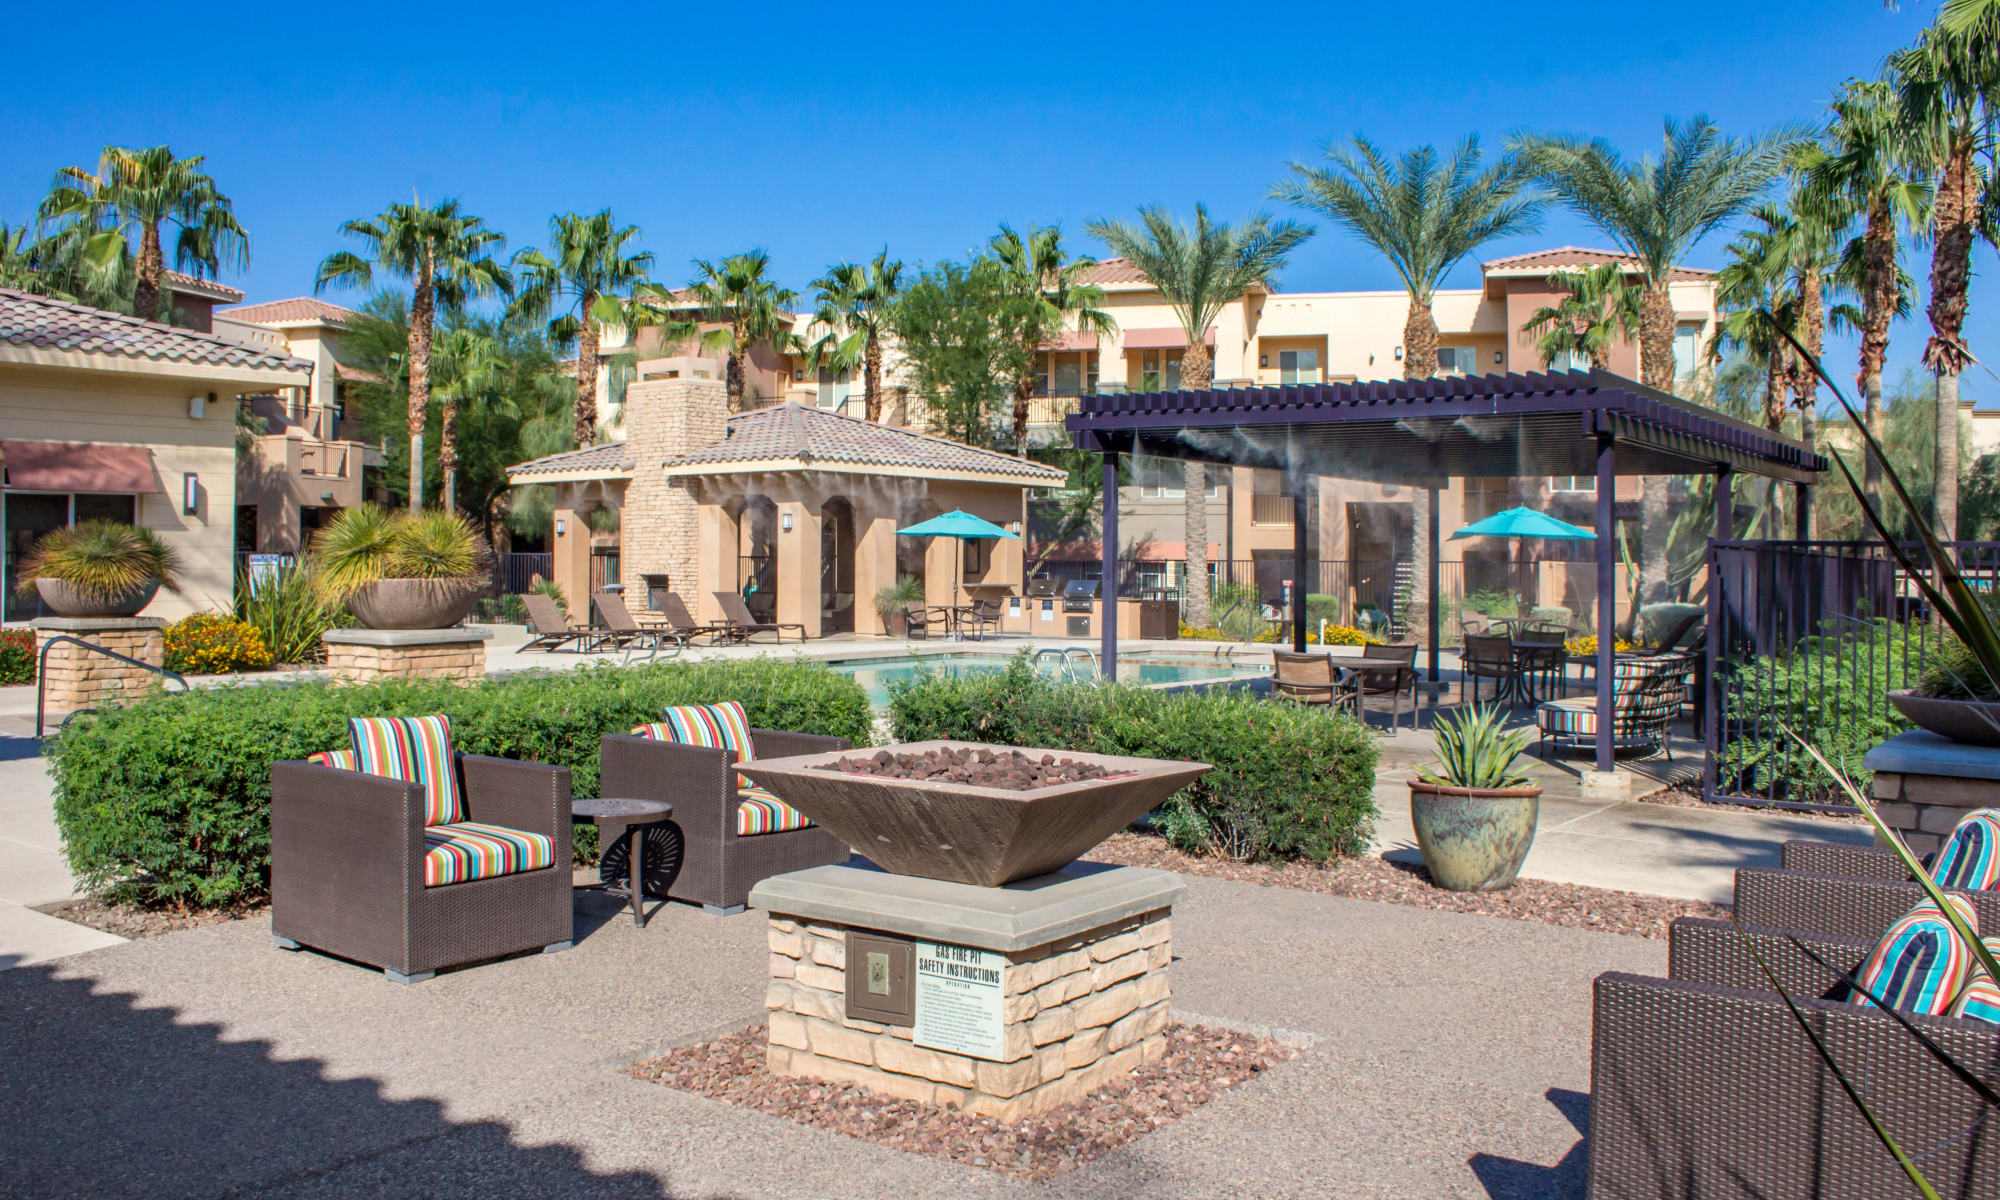 Apartments at The Residences at Stadium in Surprise, AZ